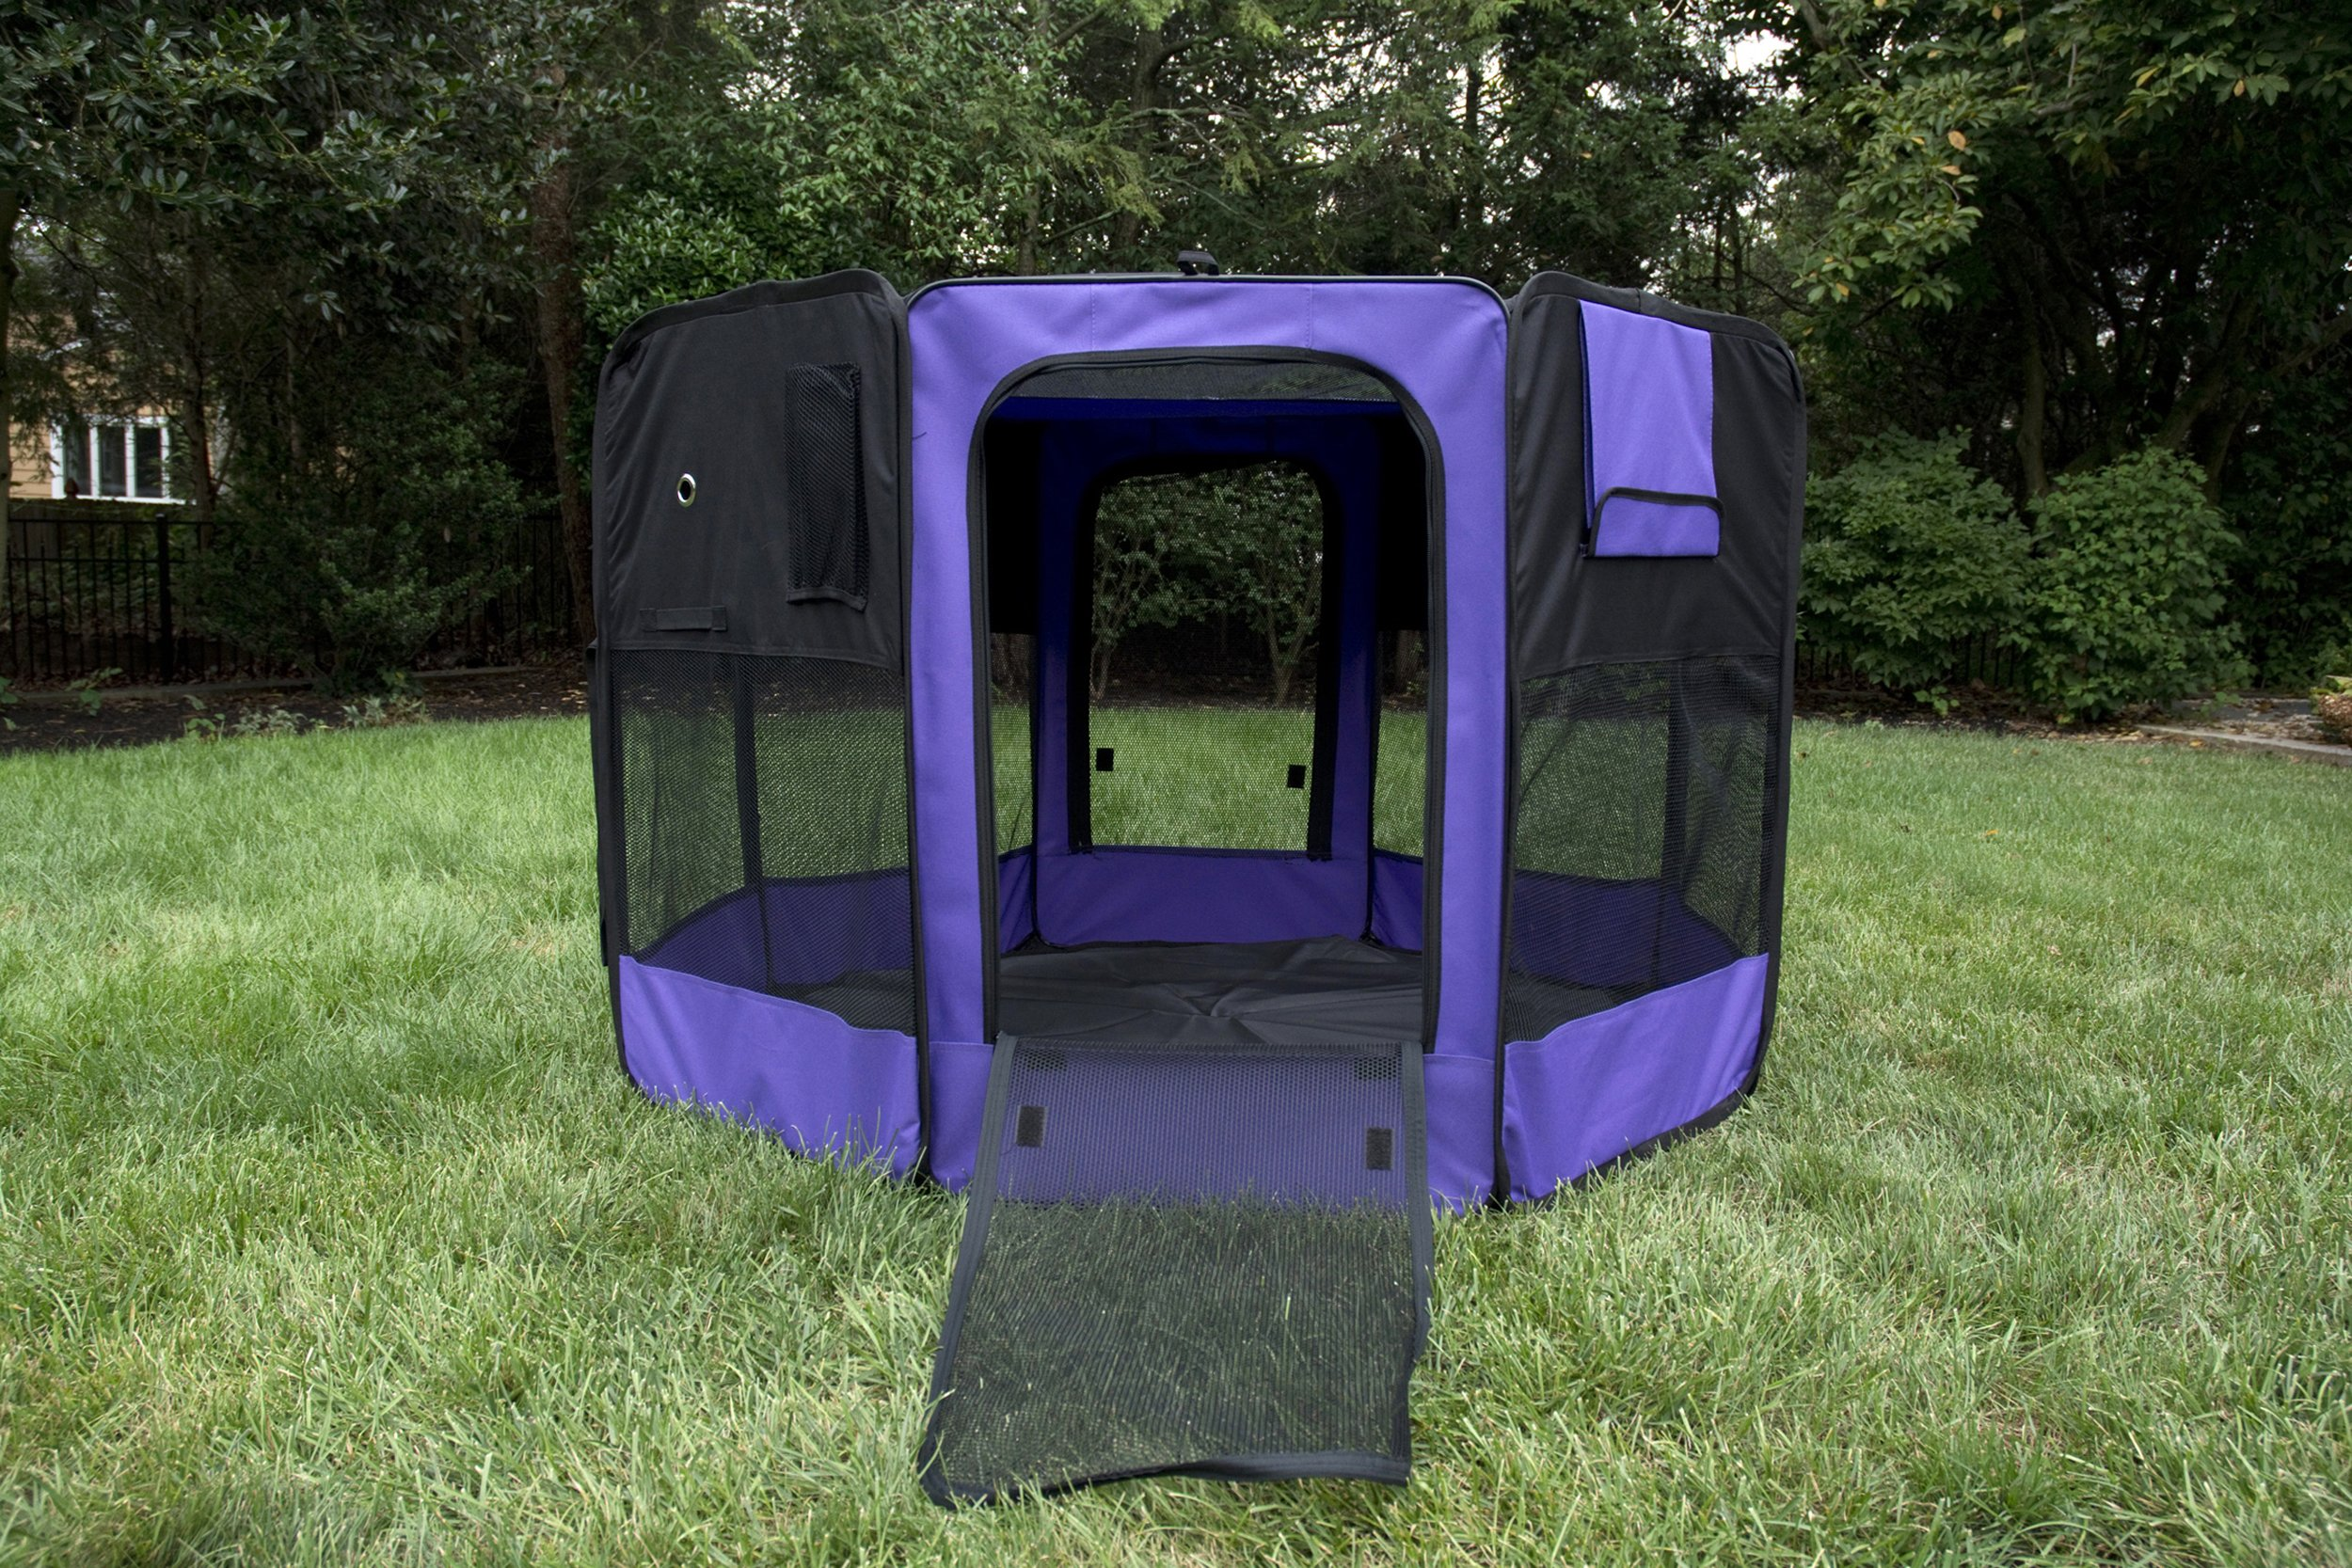 Iconic Pet Portable Pet Soft Play Pen, Purple, Small by Iconic Pet (Image #8)